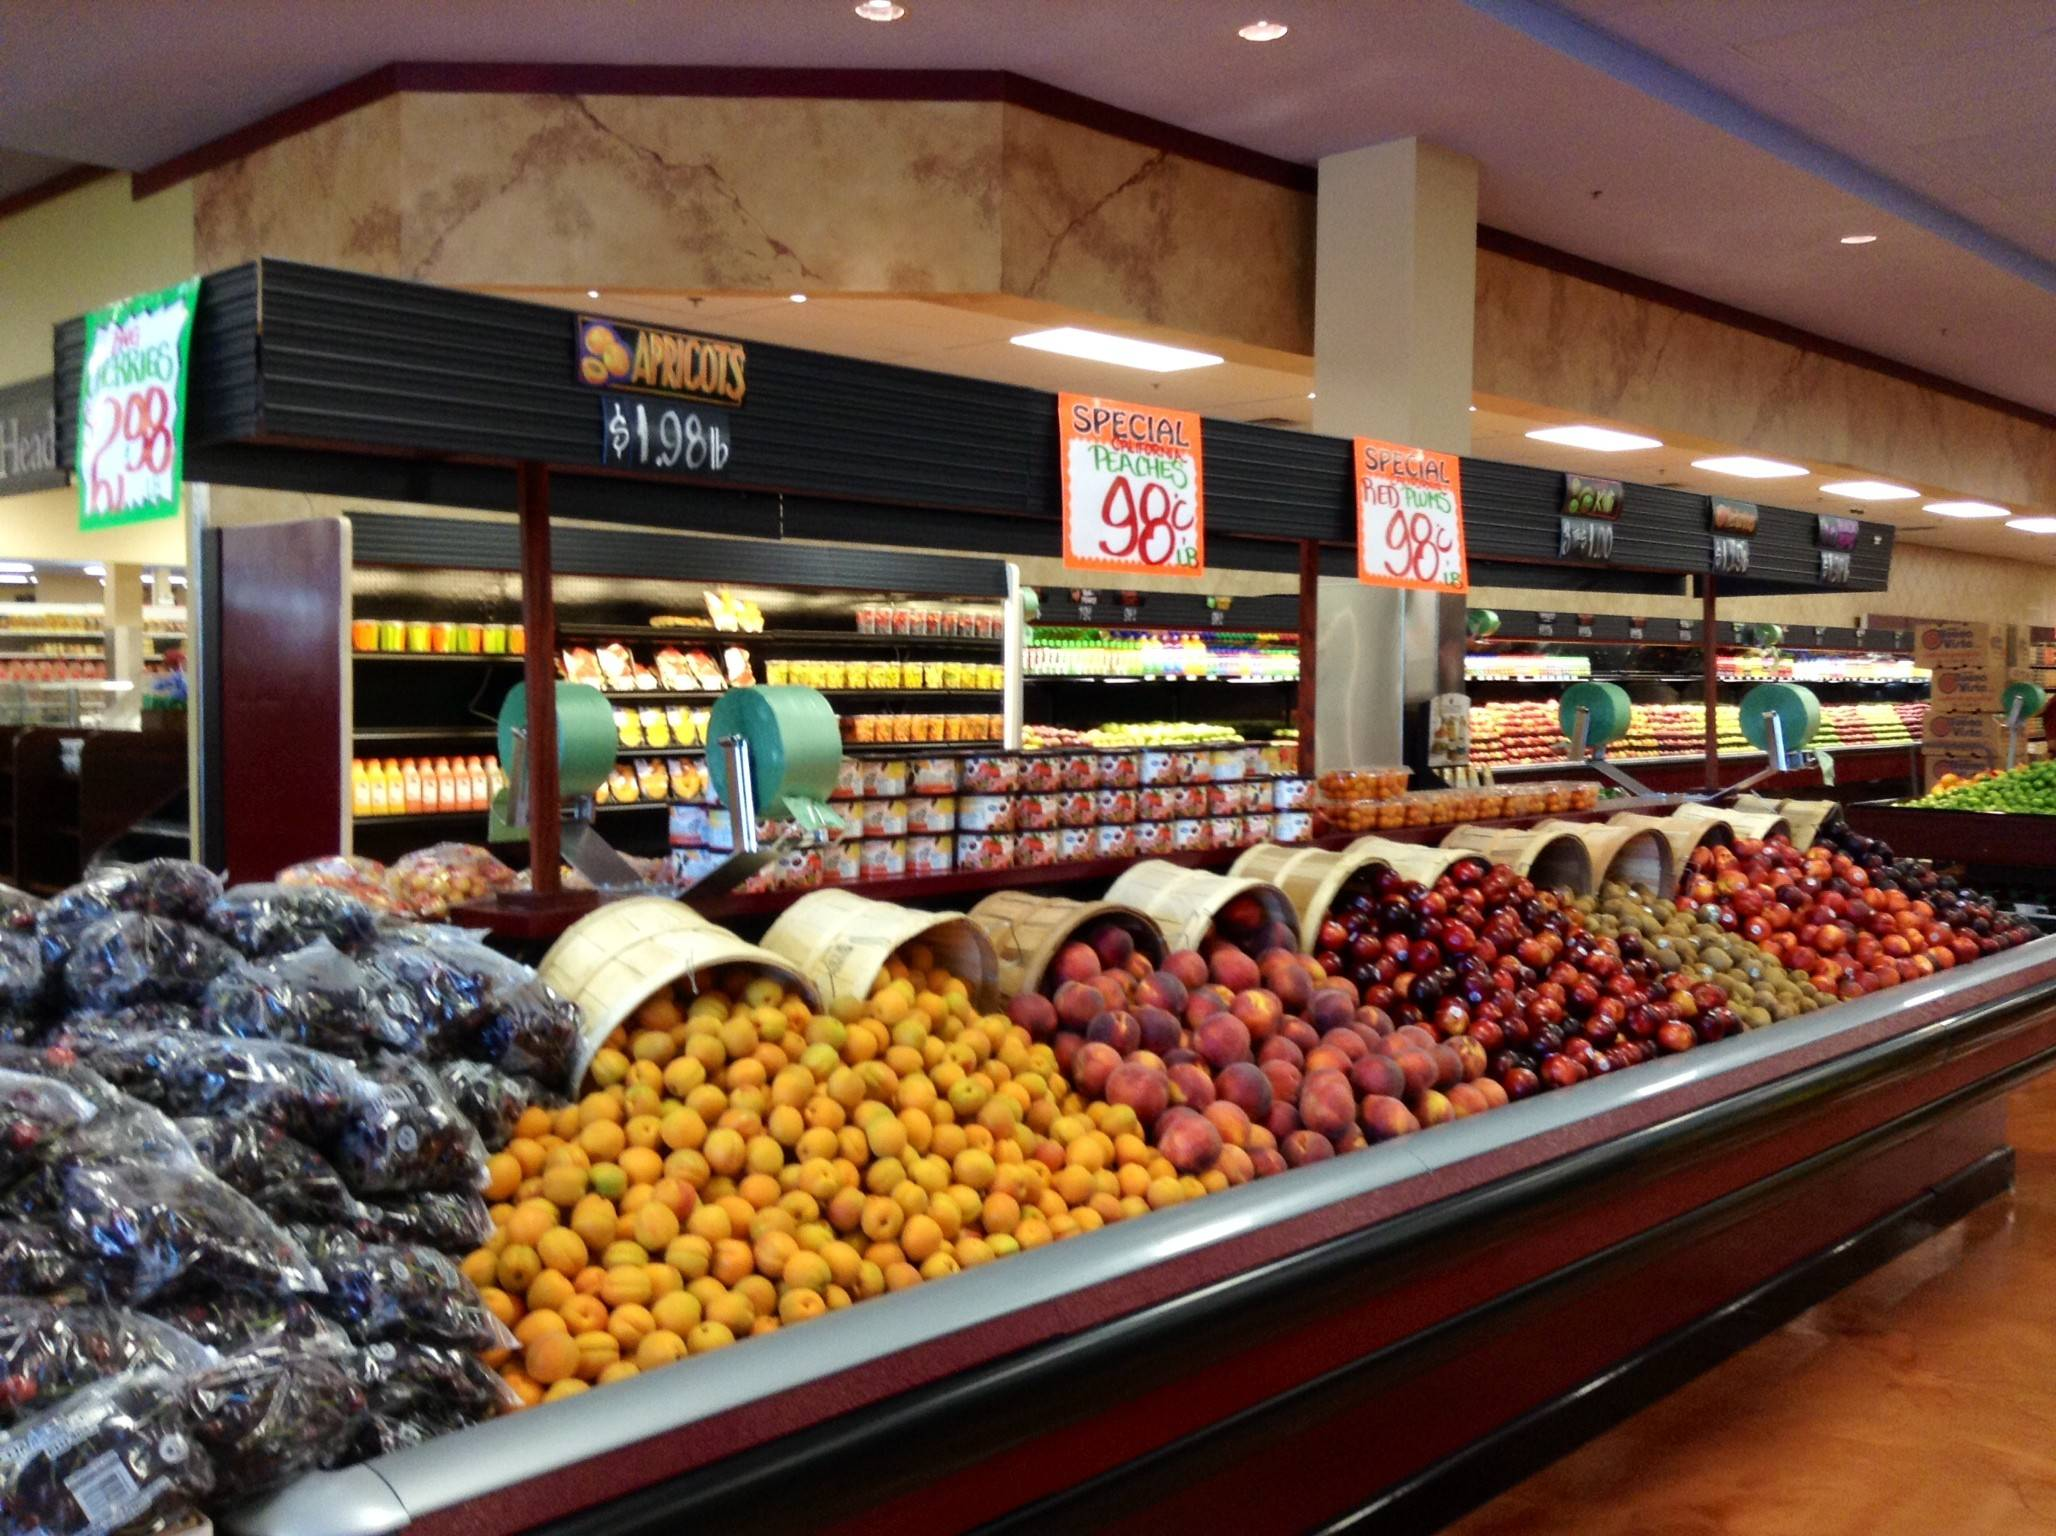 The fresh produce section of the new store.